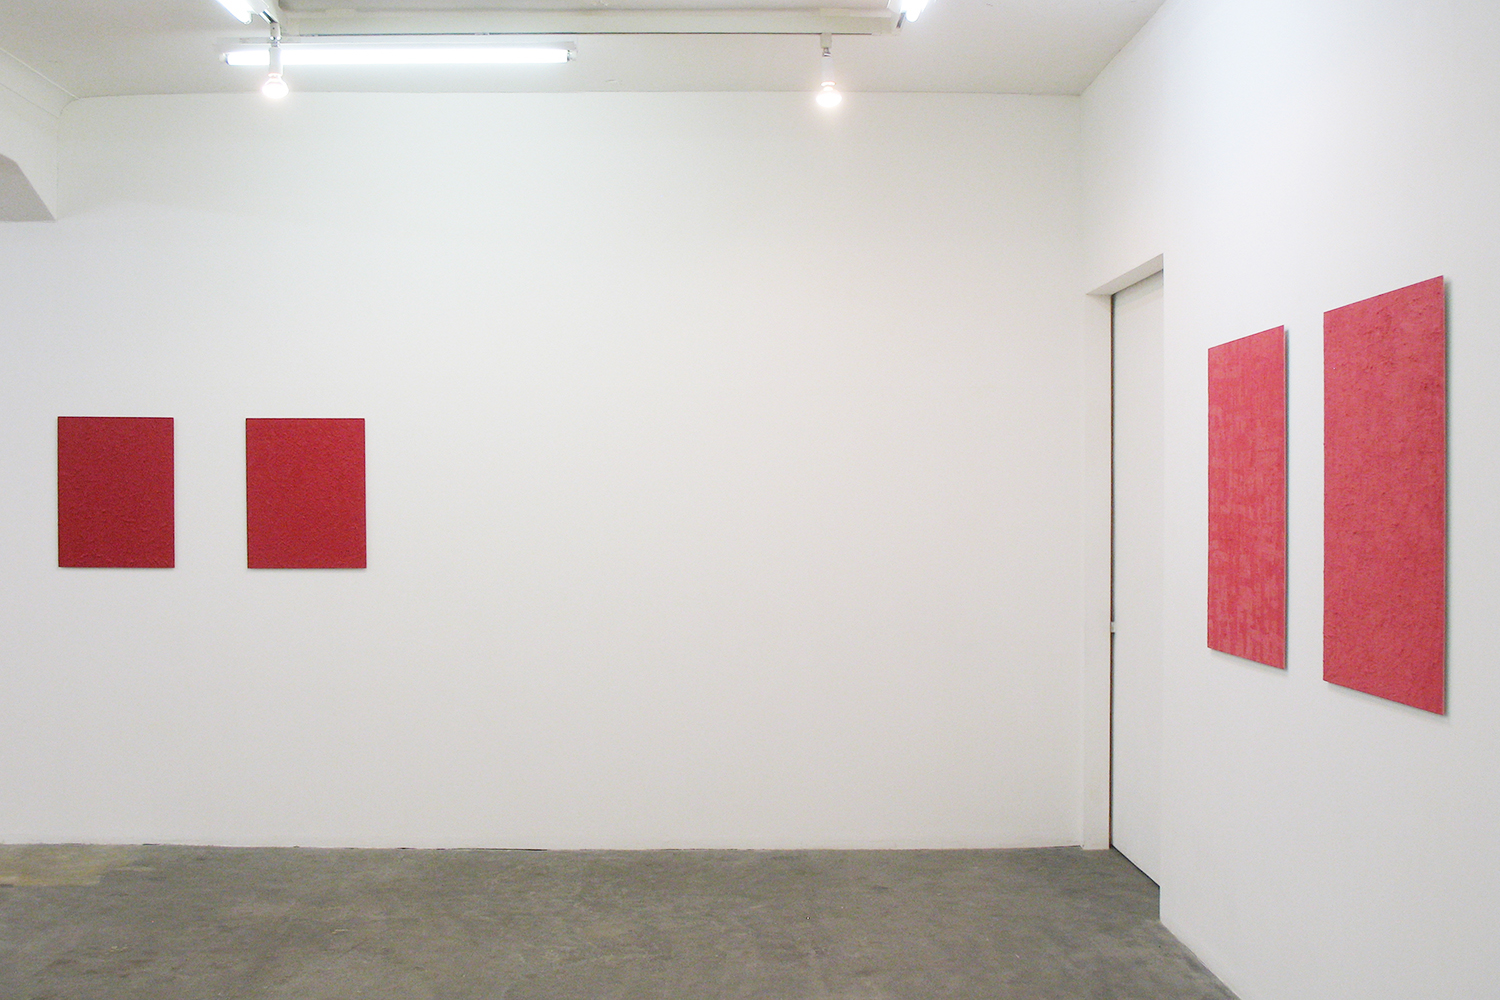 Installation View: Untitled - Rose Red (left 2 pieces)| Oil on aluminum|606 x 500 mm<br> Untitled - Deep Red (right 2 pieces)|Oil on aluminum|910 x 727 mm|2012 each